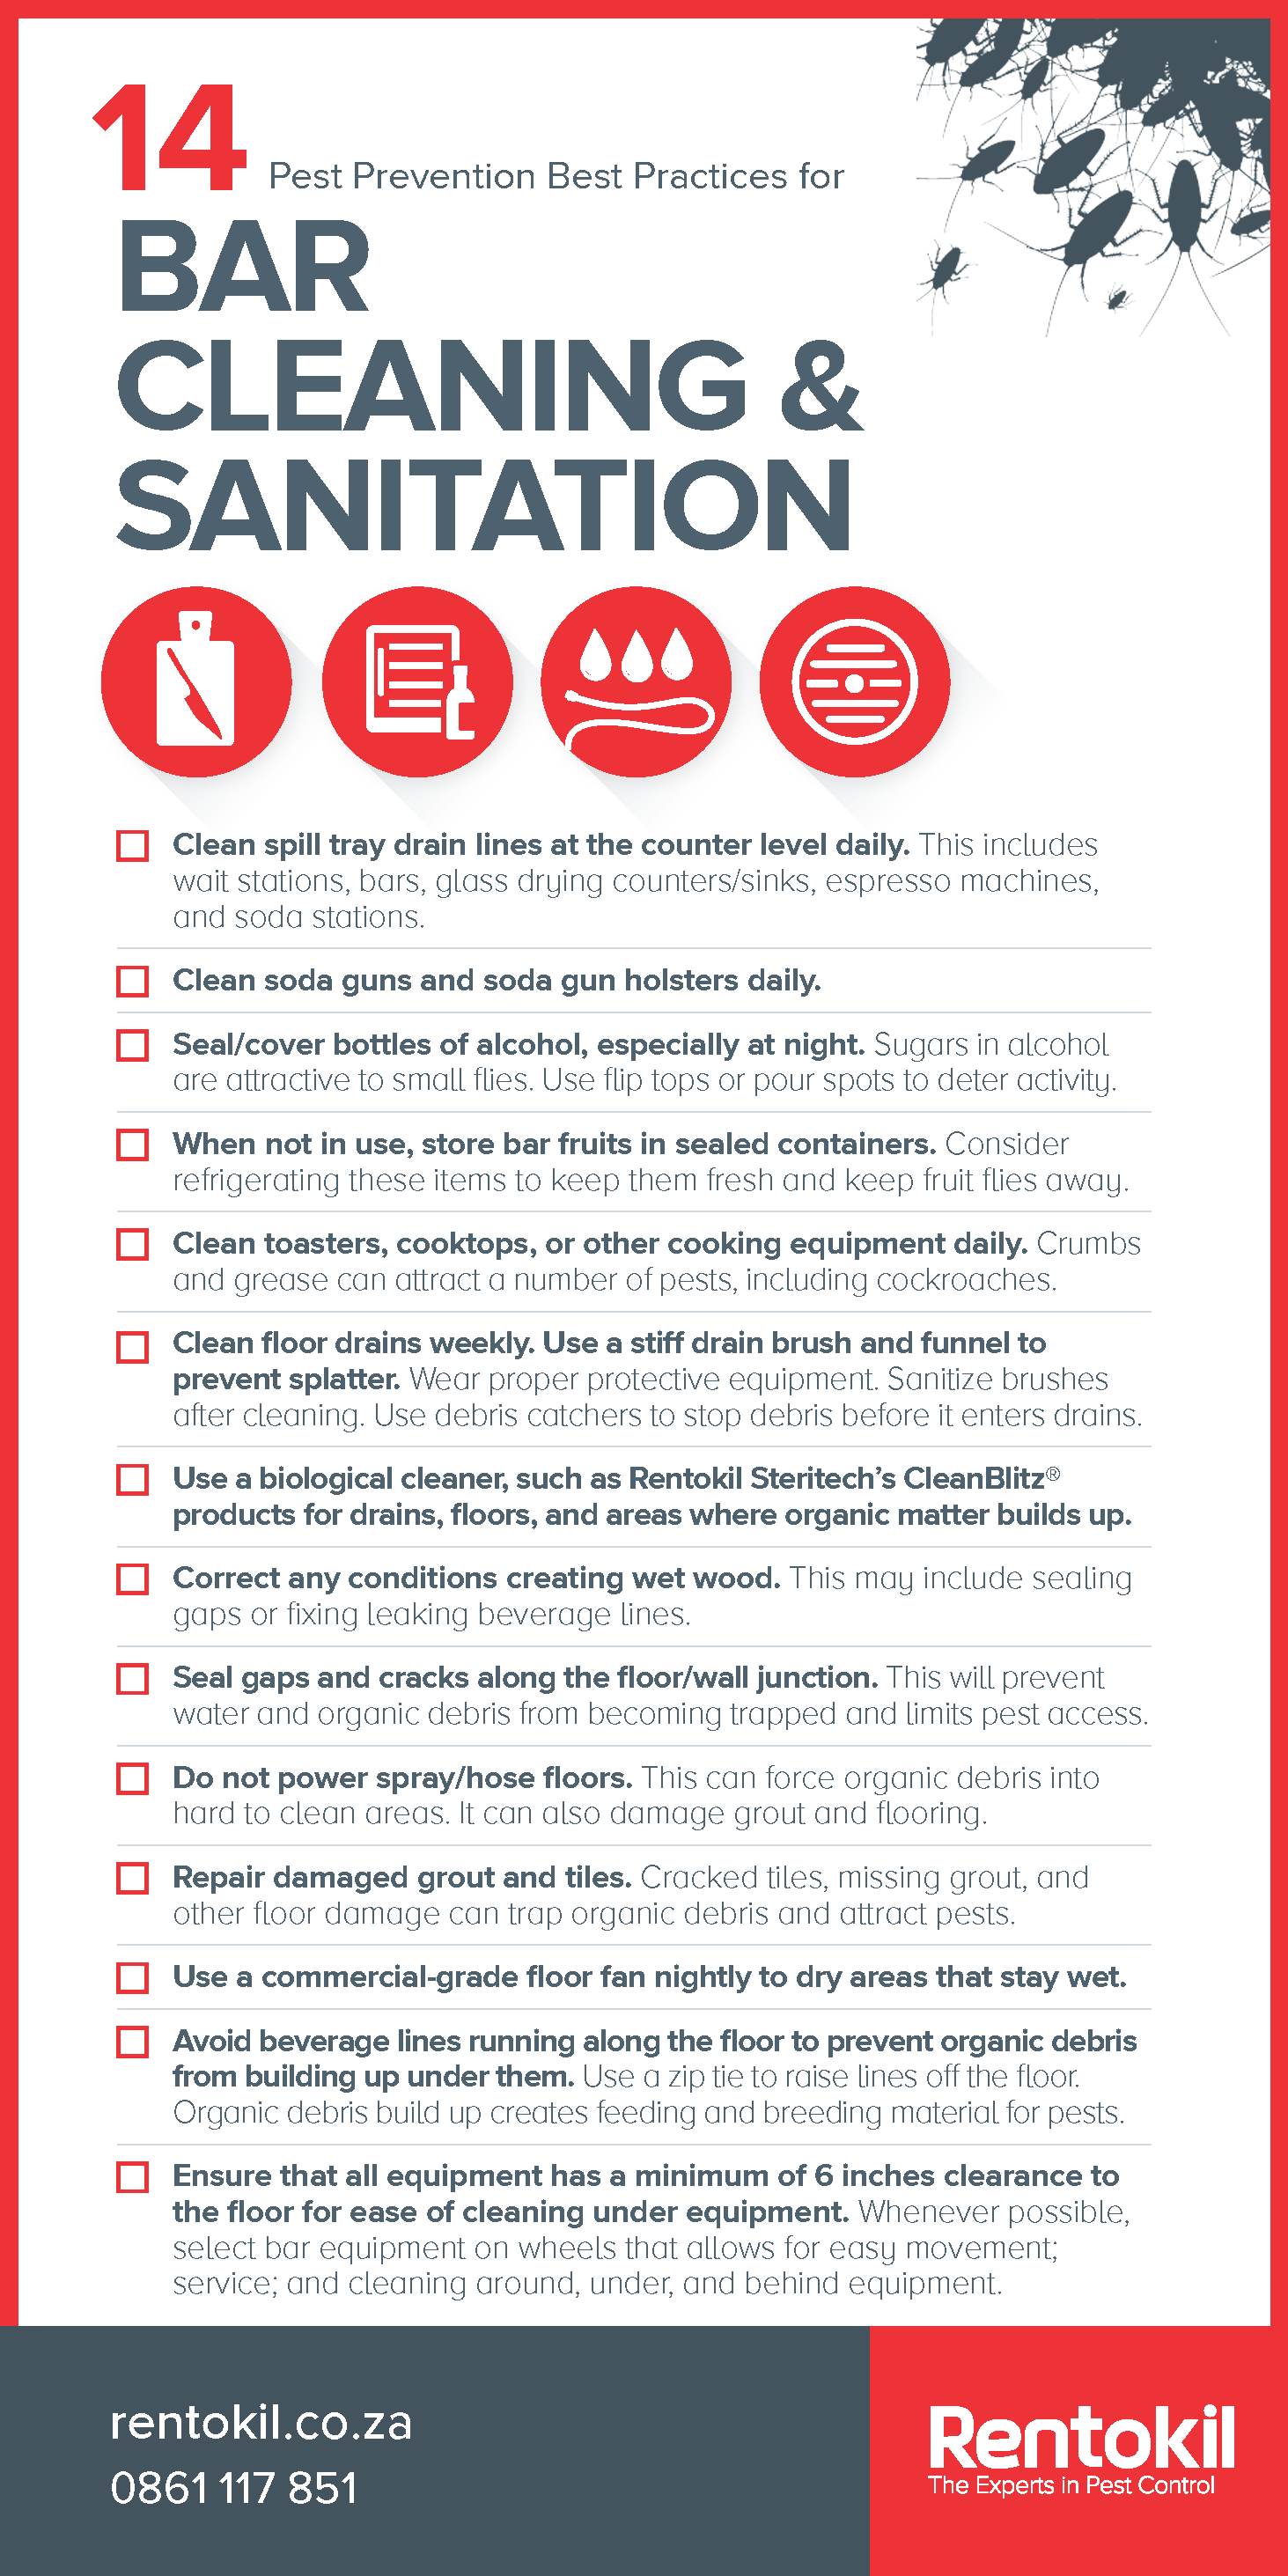 Pest Prevention Poster - 14 Best Practices for Bar Cleaning and Sanitation